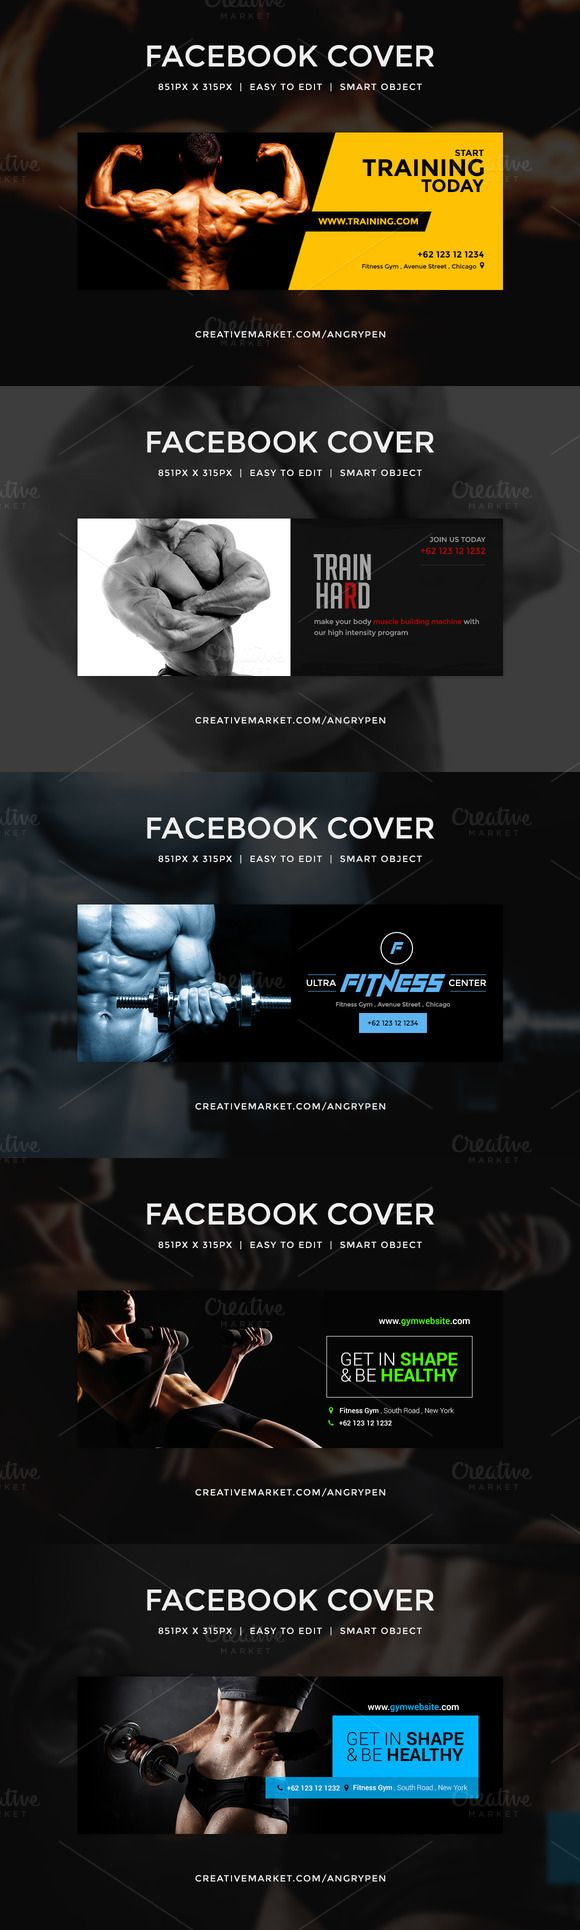 Gym Workout facebook covers by Angry Pen on @creativemarket